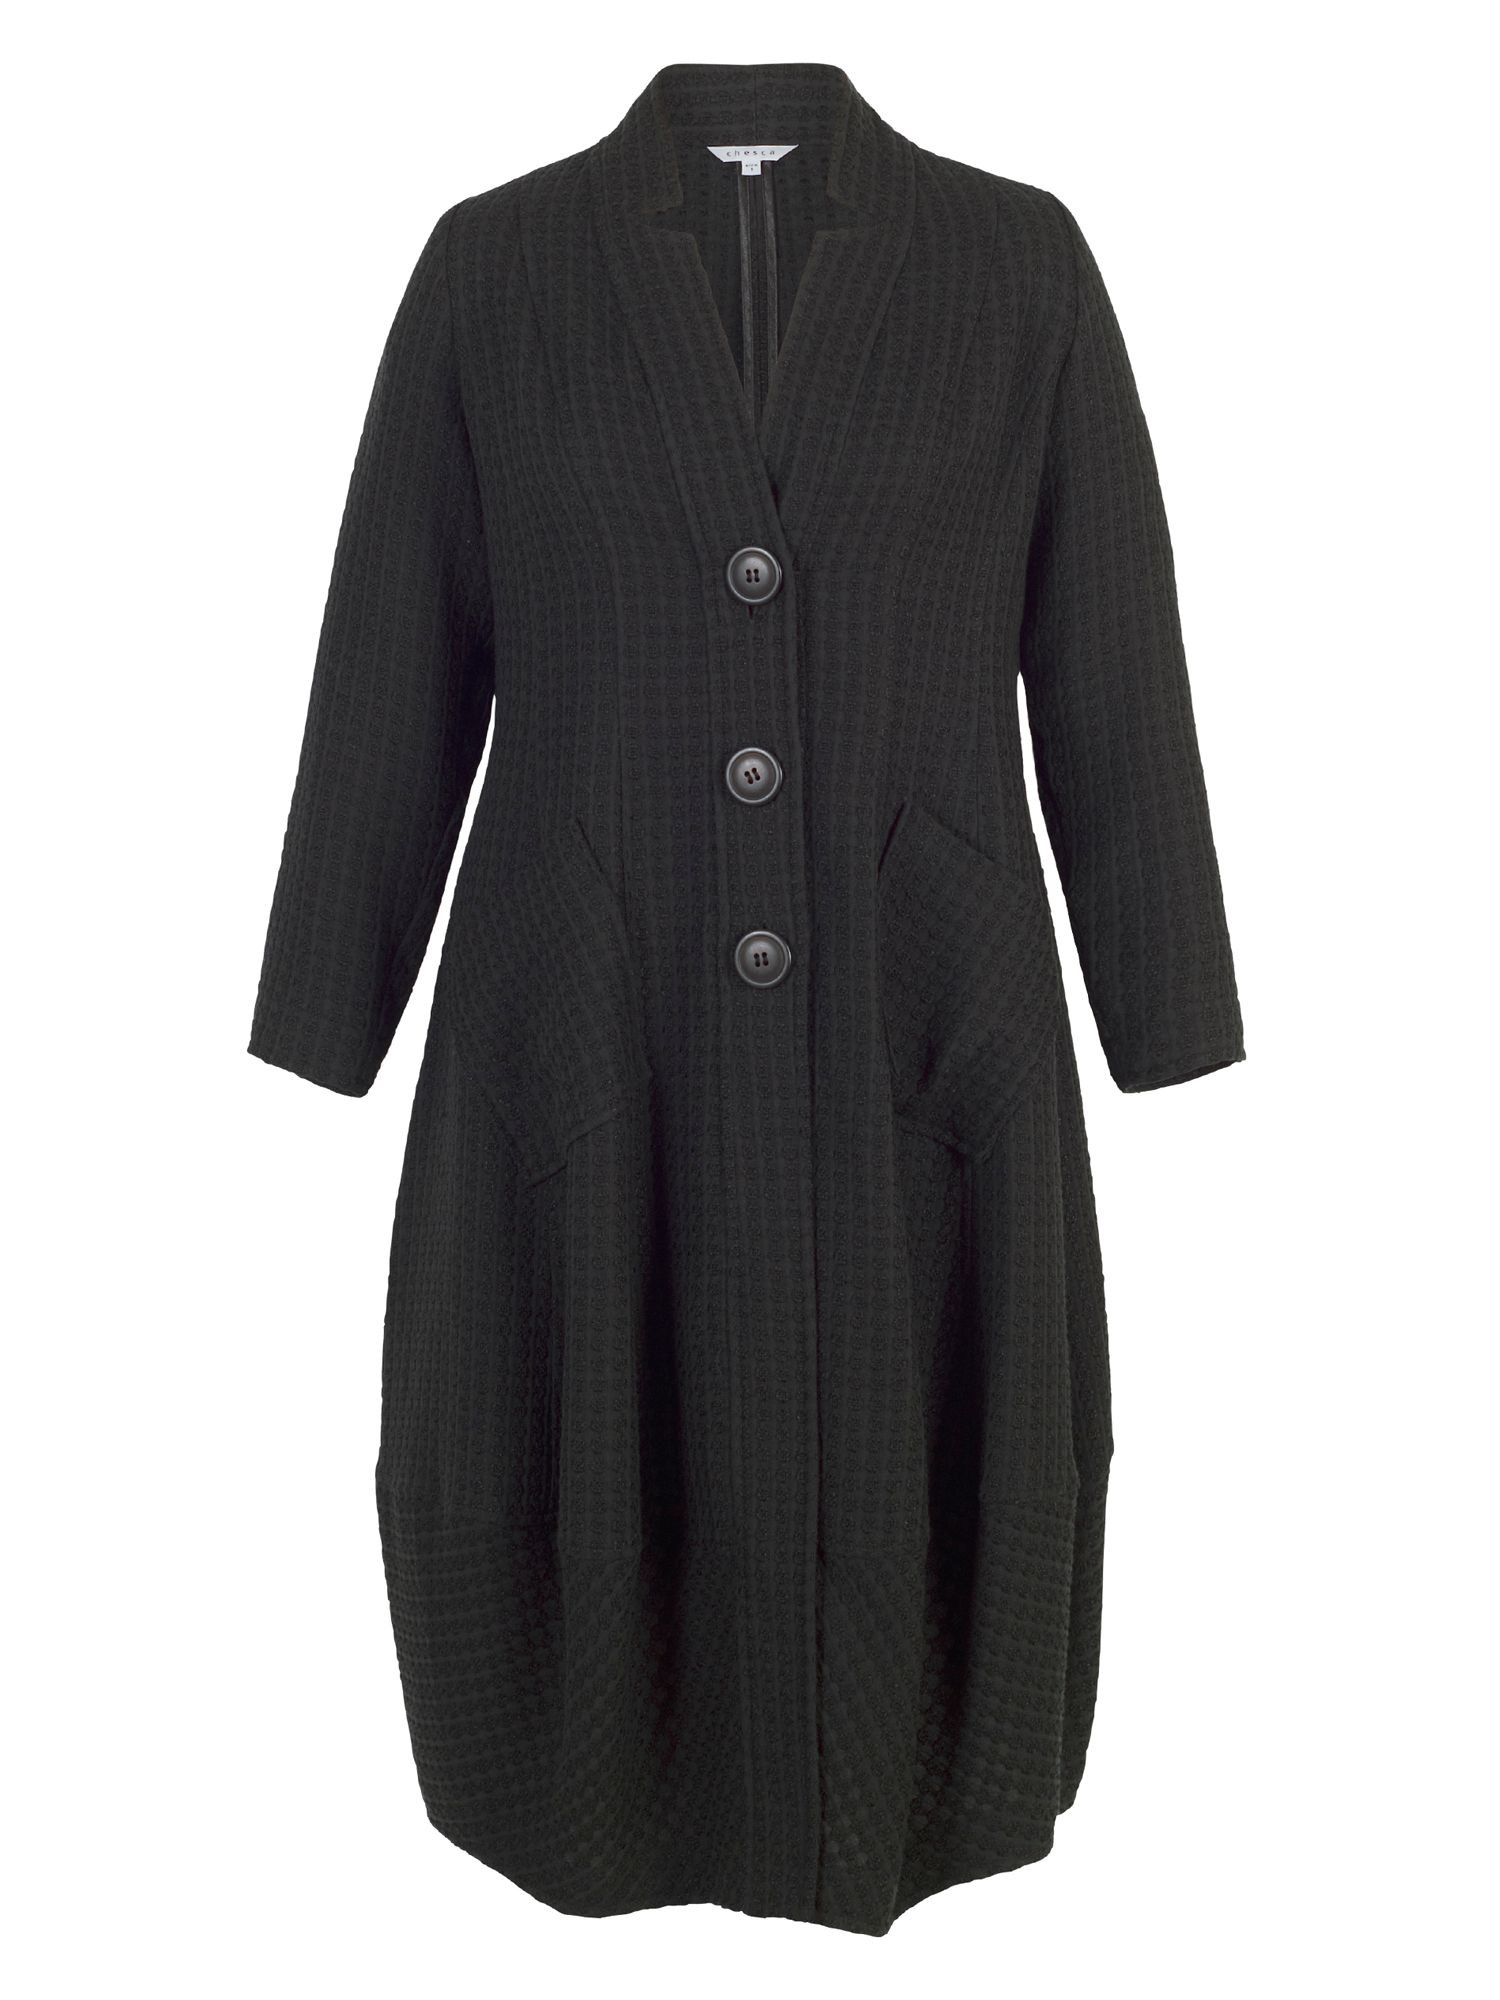 Chesca Notch Collar Basket Weave Coat, Black